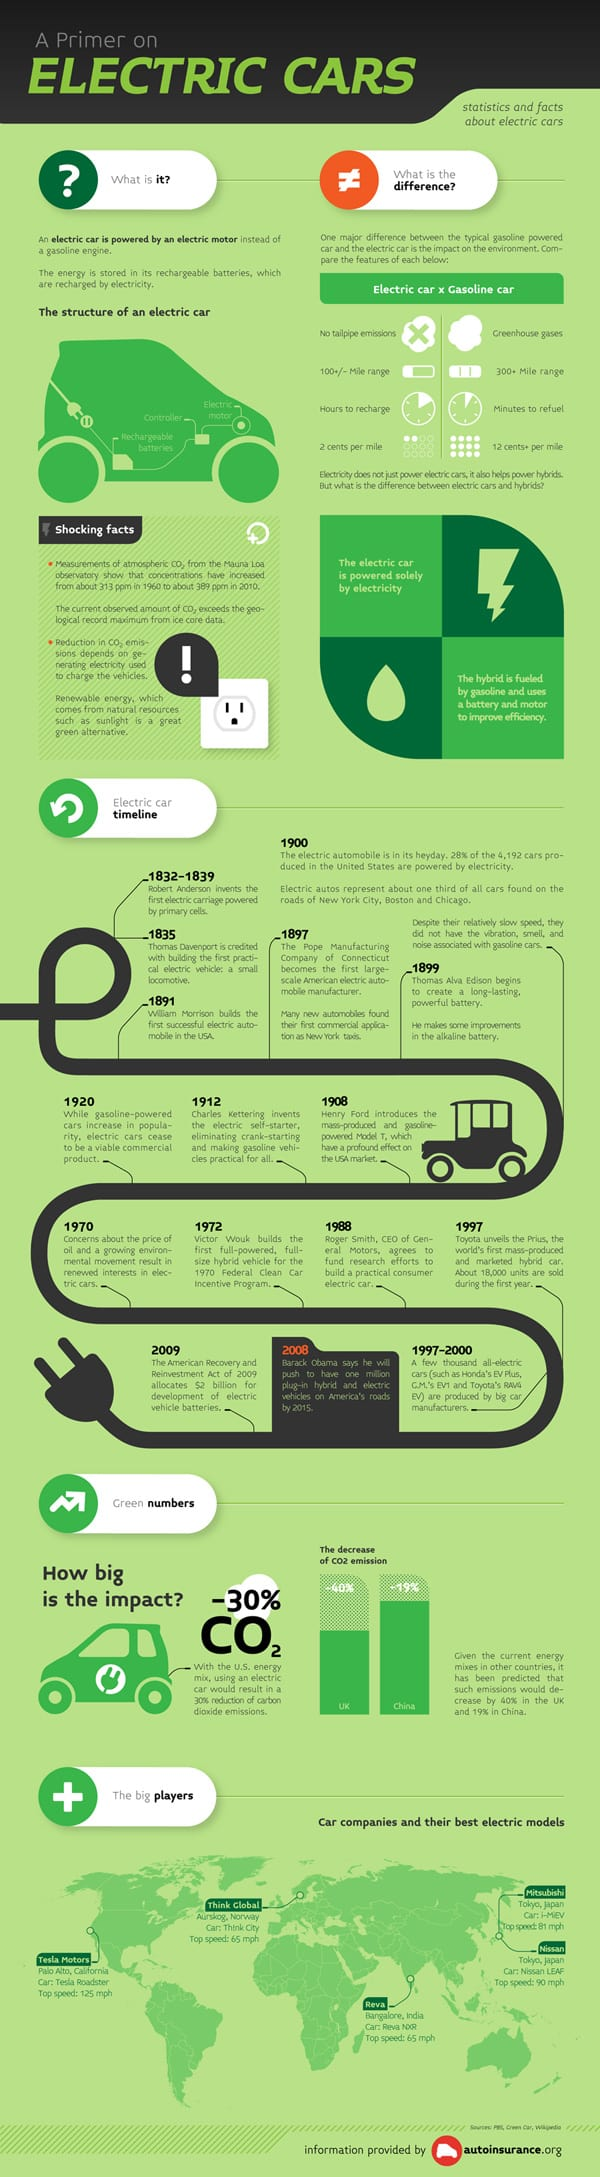 electric cars infographic